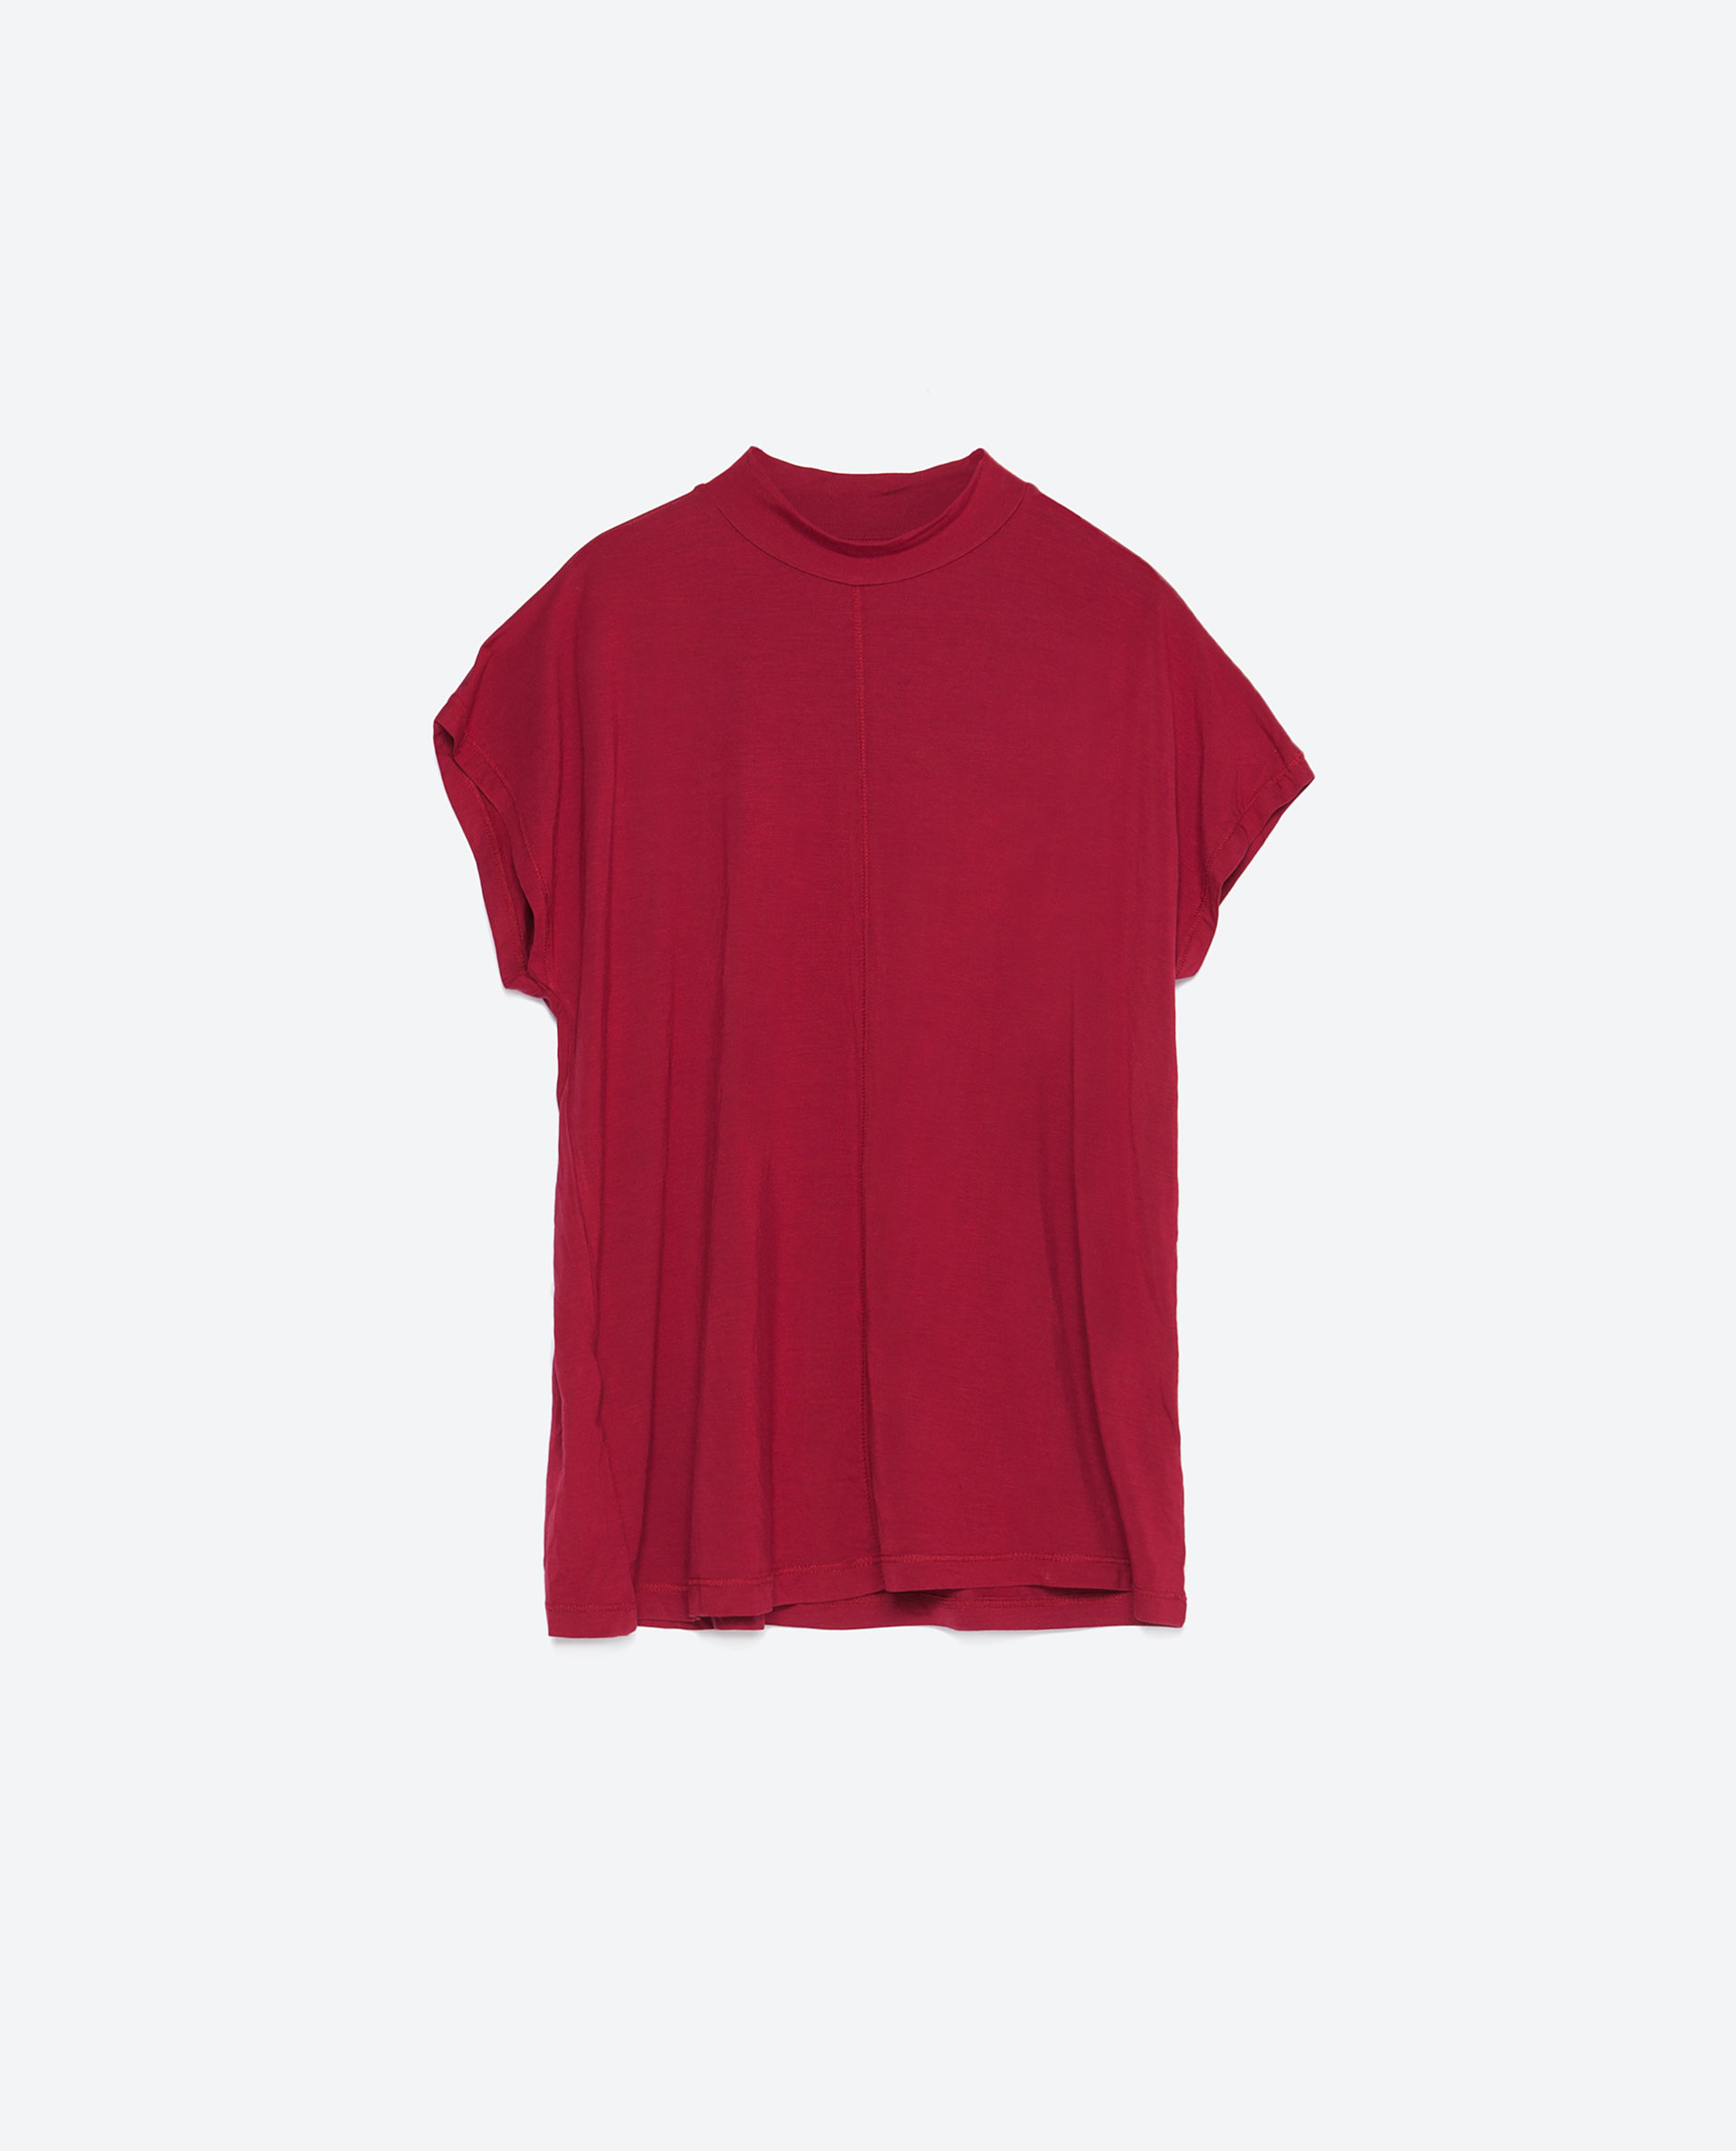 Zara high neck t shirt in red dark red lyst for High neck tee shirts